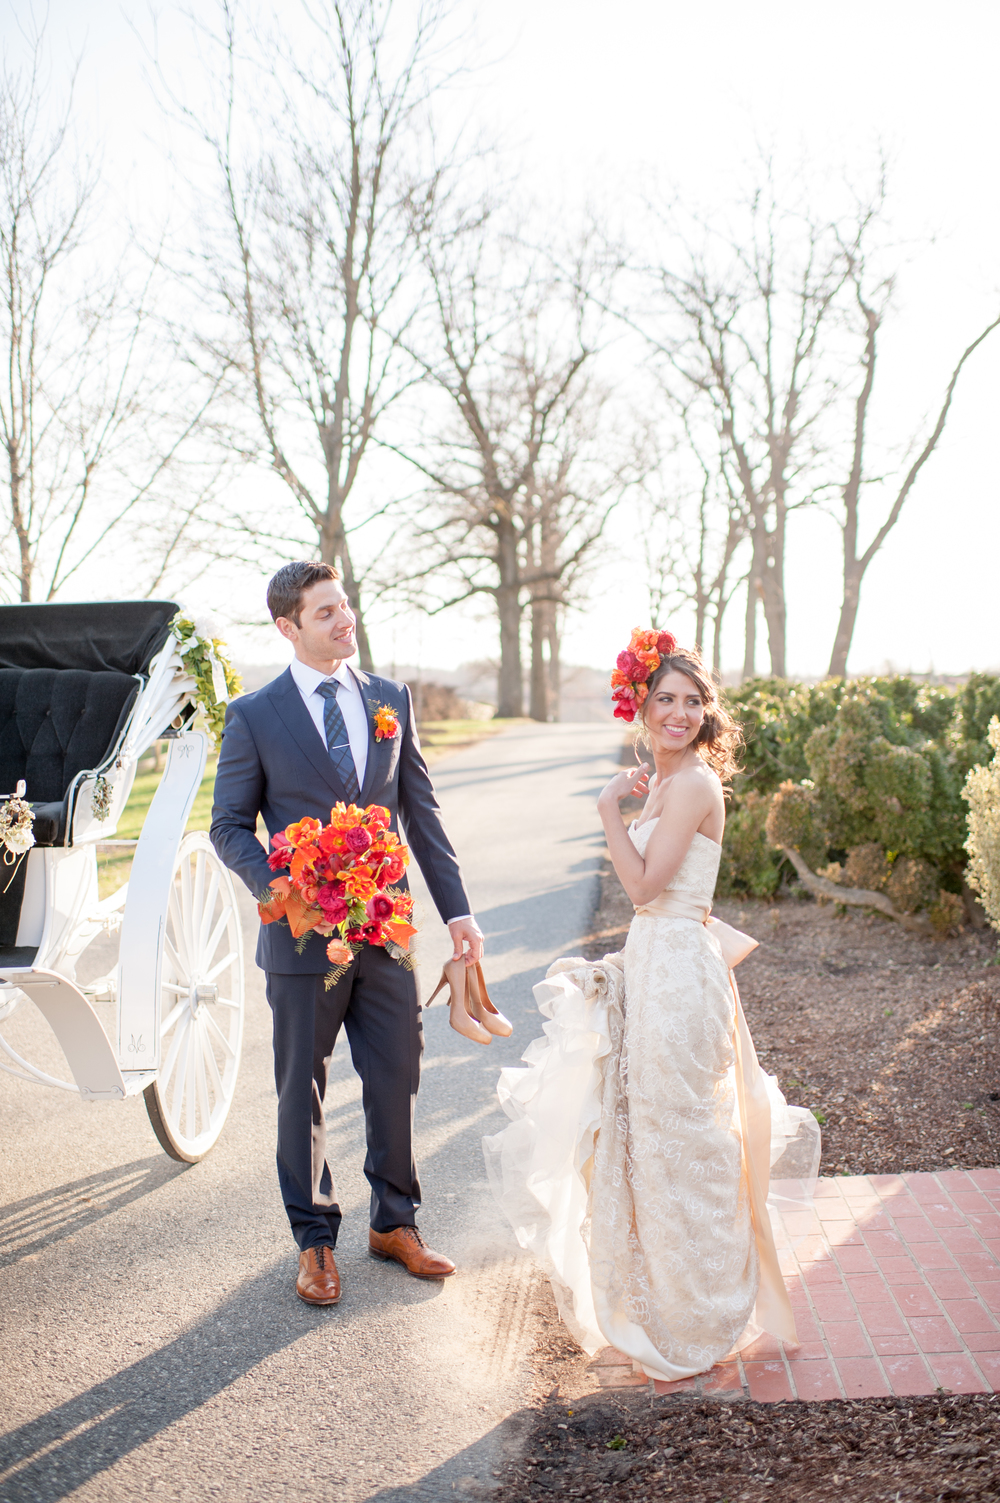 Vibrant Romantic Dutch Wedding at Woodlawn Manor-118.jpg